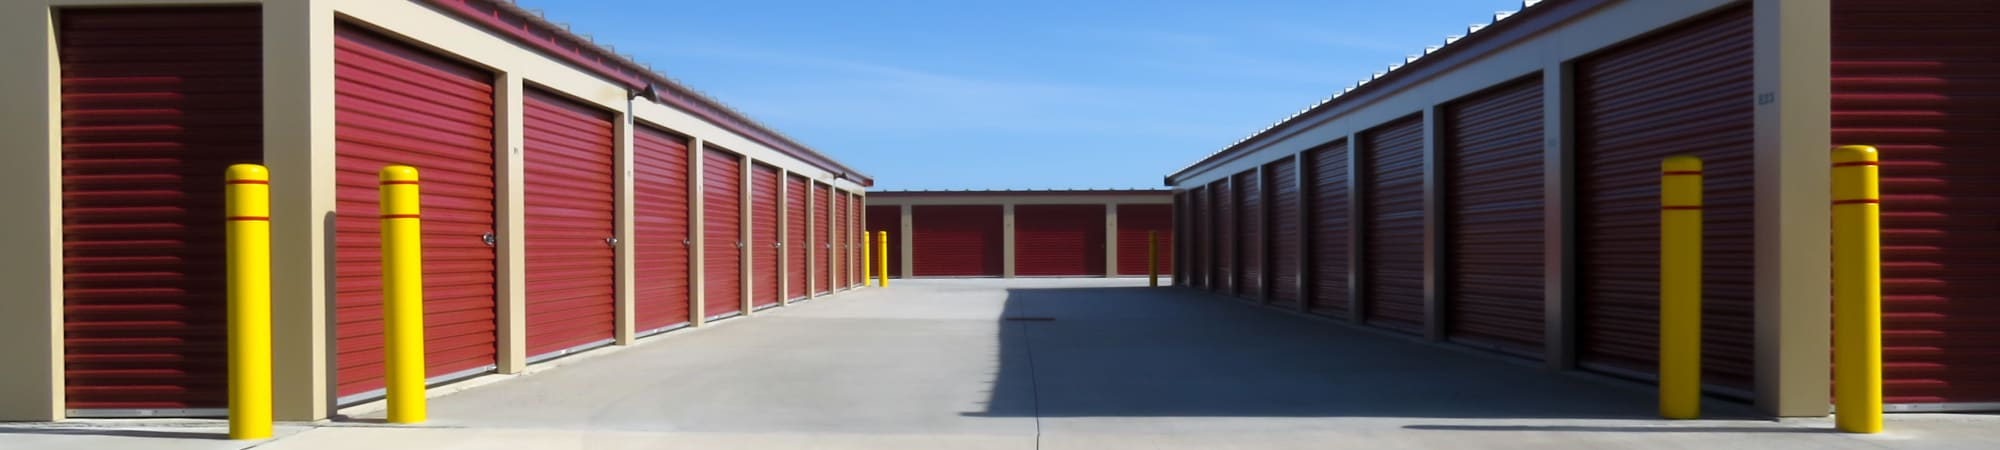 Auto, boat, and RV storage at Handy Storage in Pembroke Pines, Florida